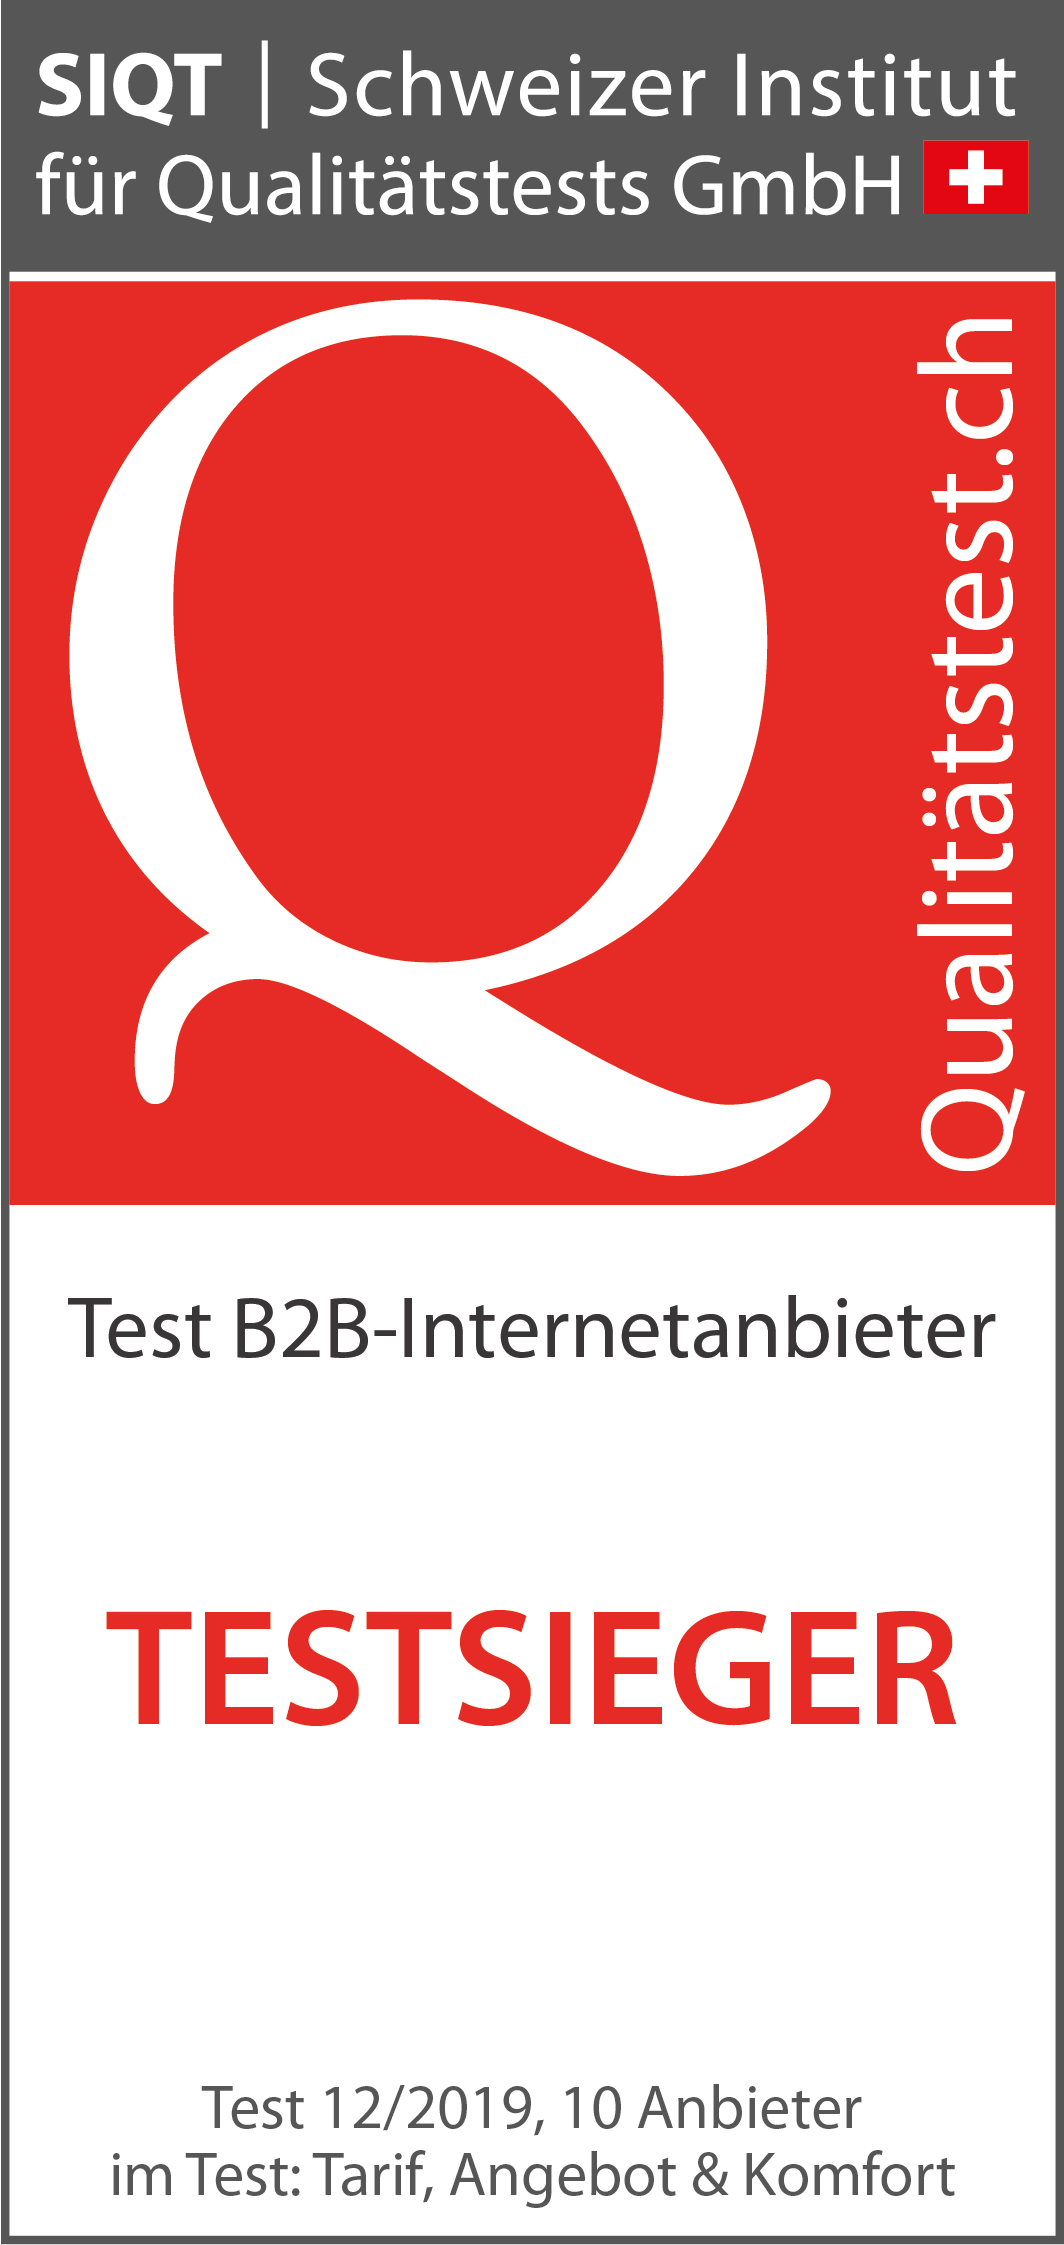 B2B-Internetanbieter im Test